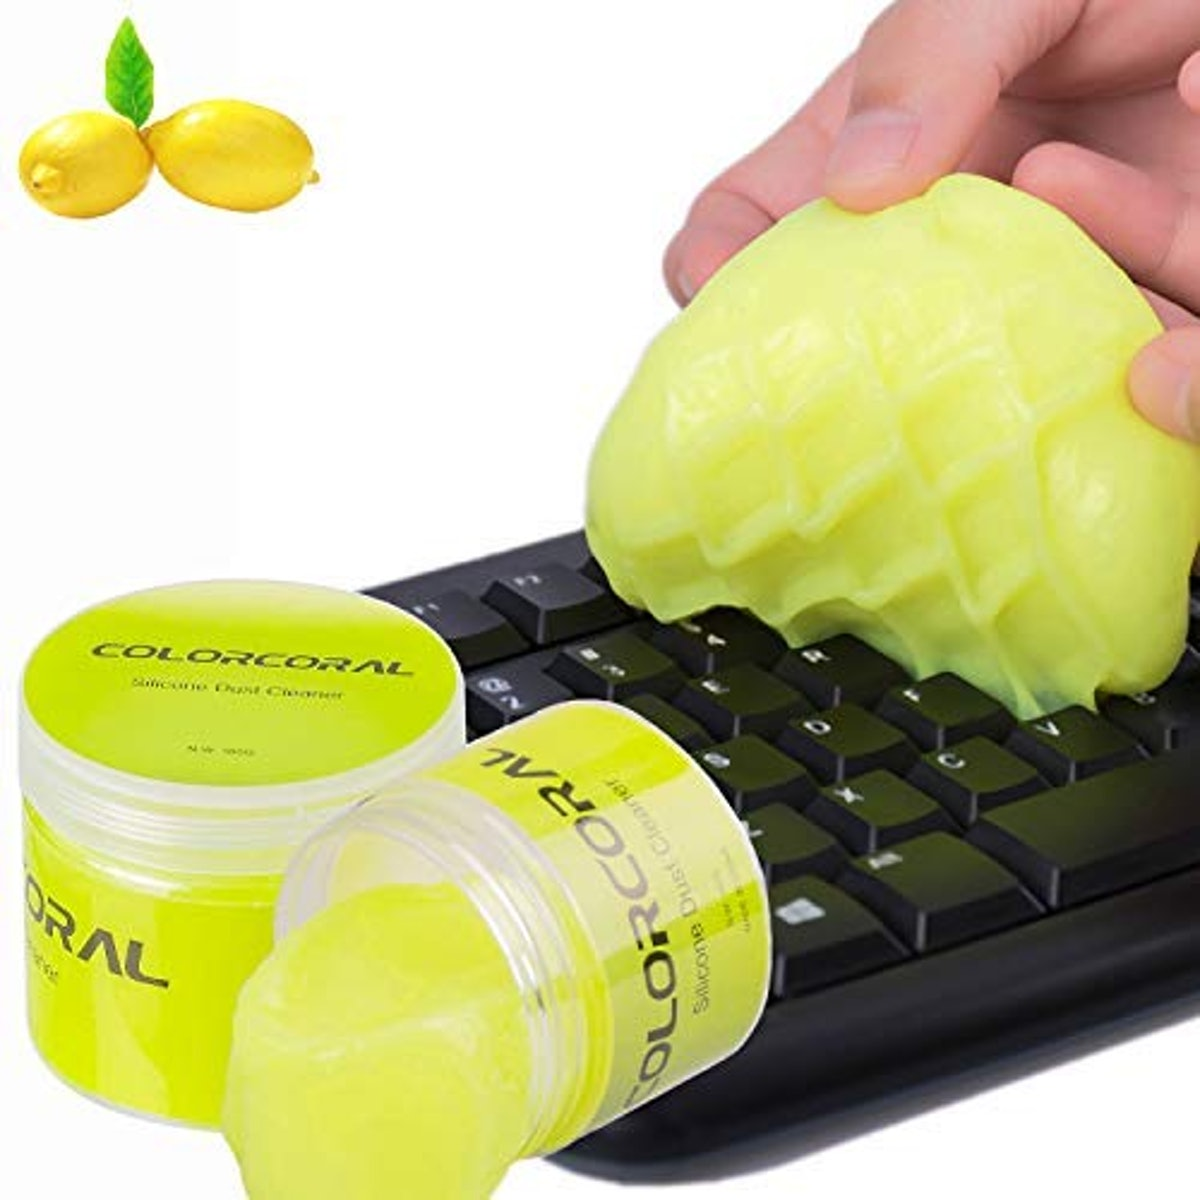 ColorCoral Keyboard Cleaning Gel,